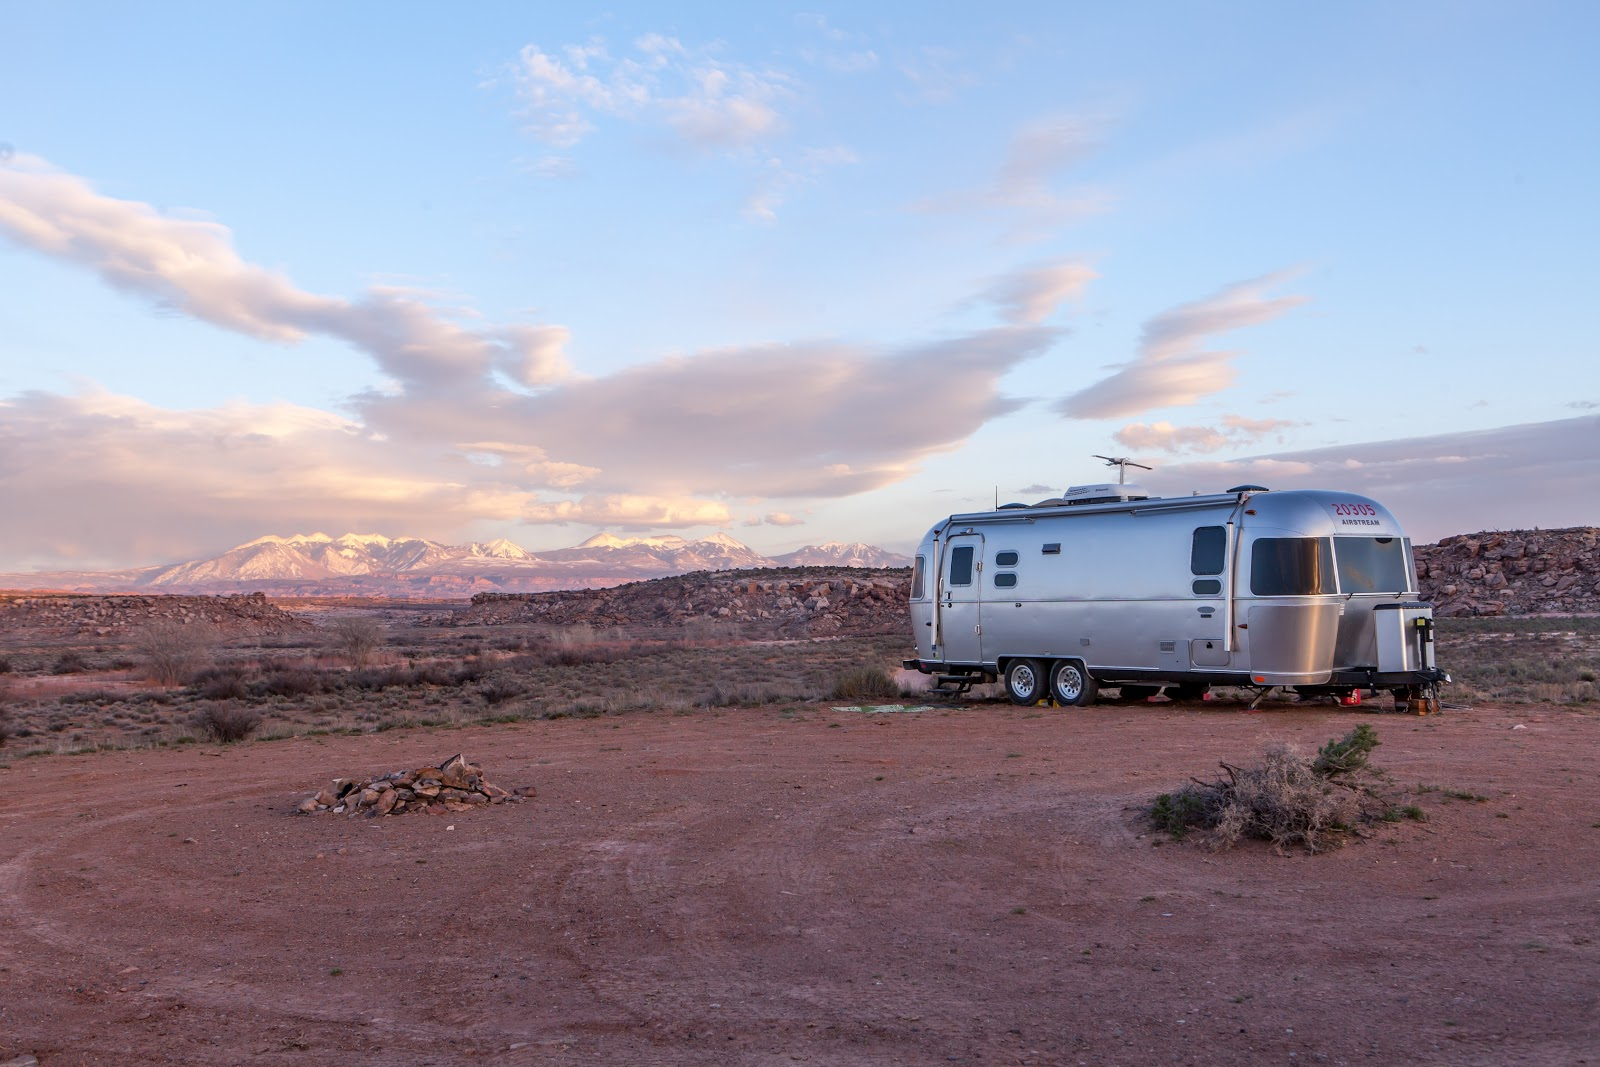 The Ultimate Guide For Finding the BEST Spots to Park Your RV